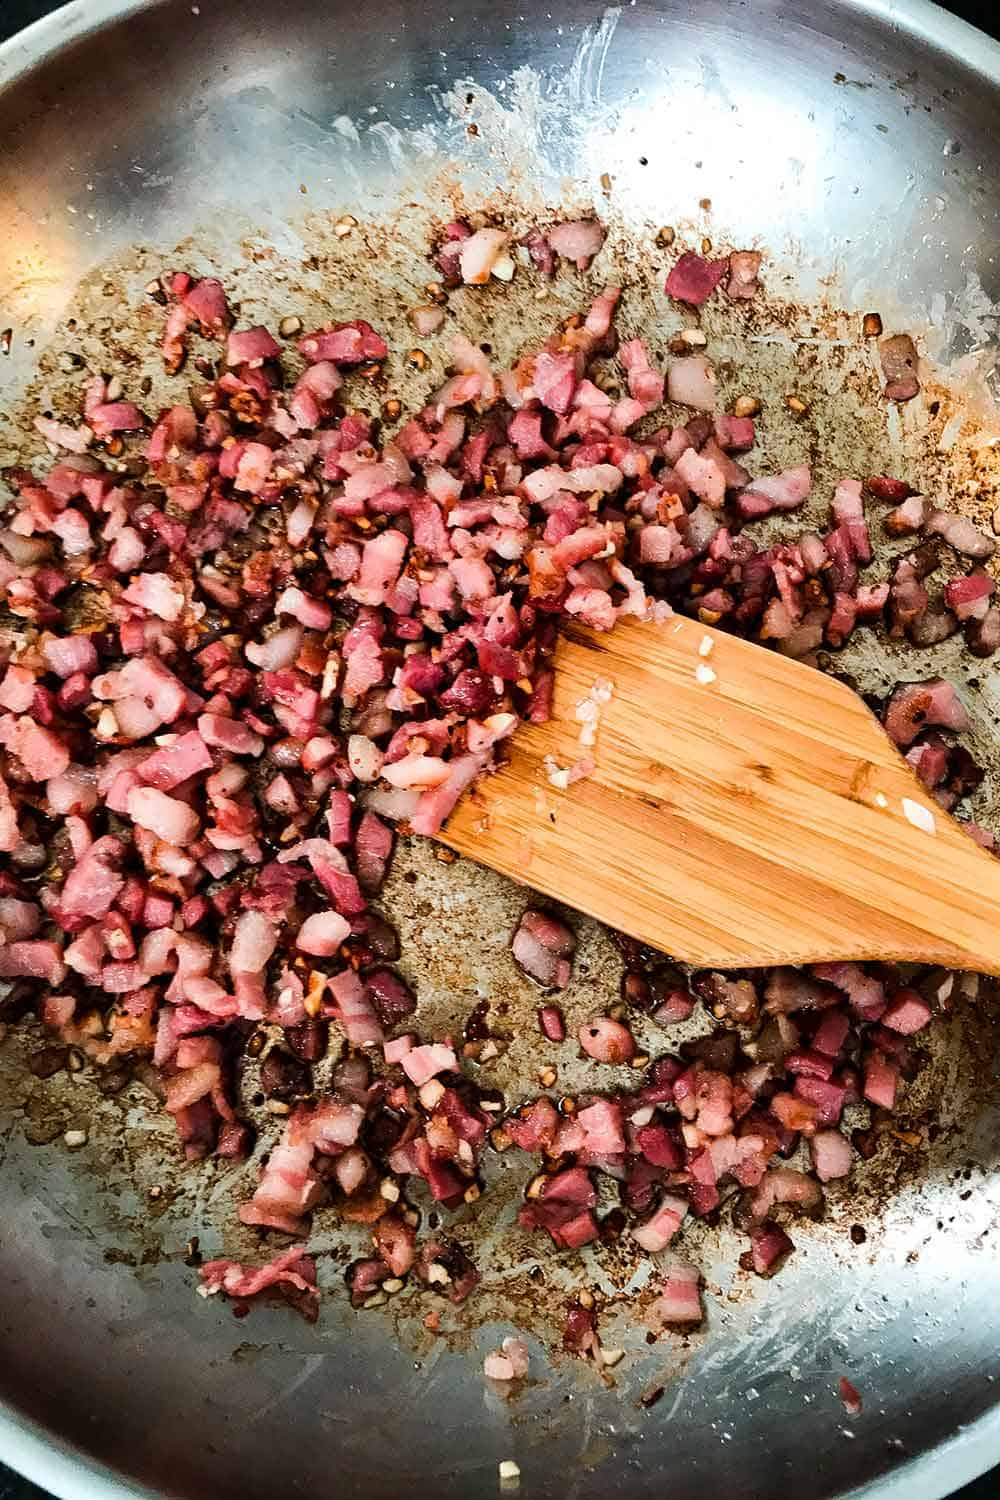 Cook the pancetta and garlic until lightly browned in a large skillet.